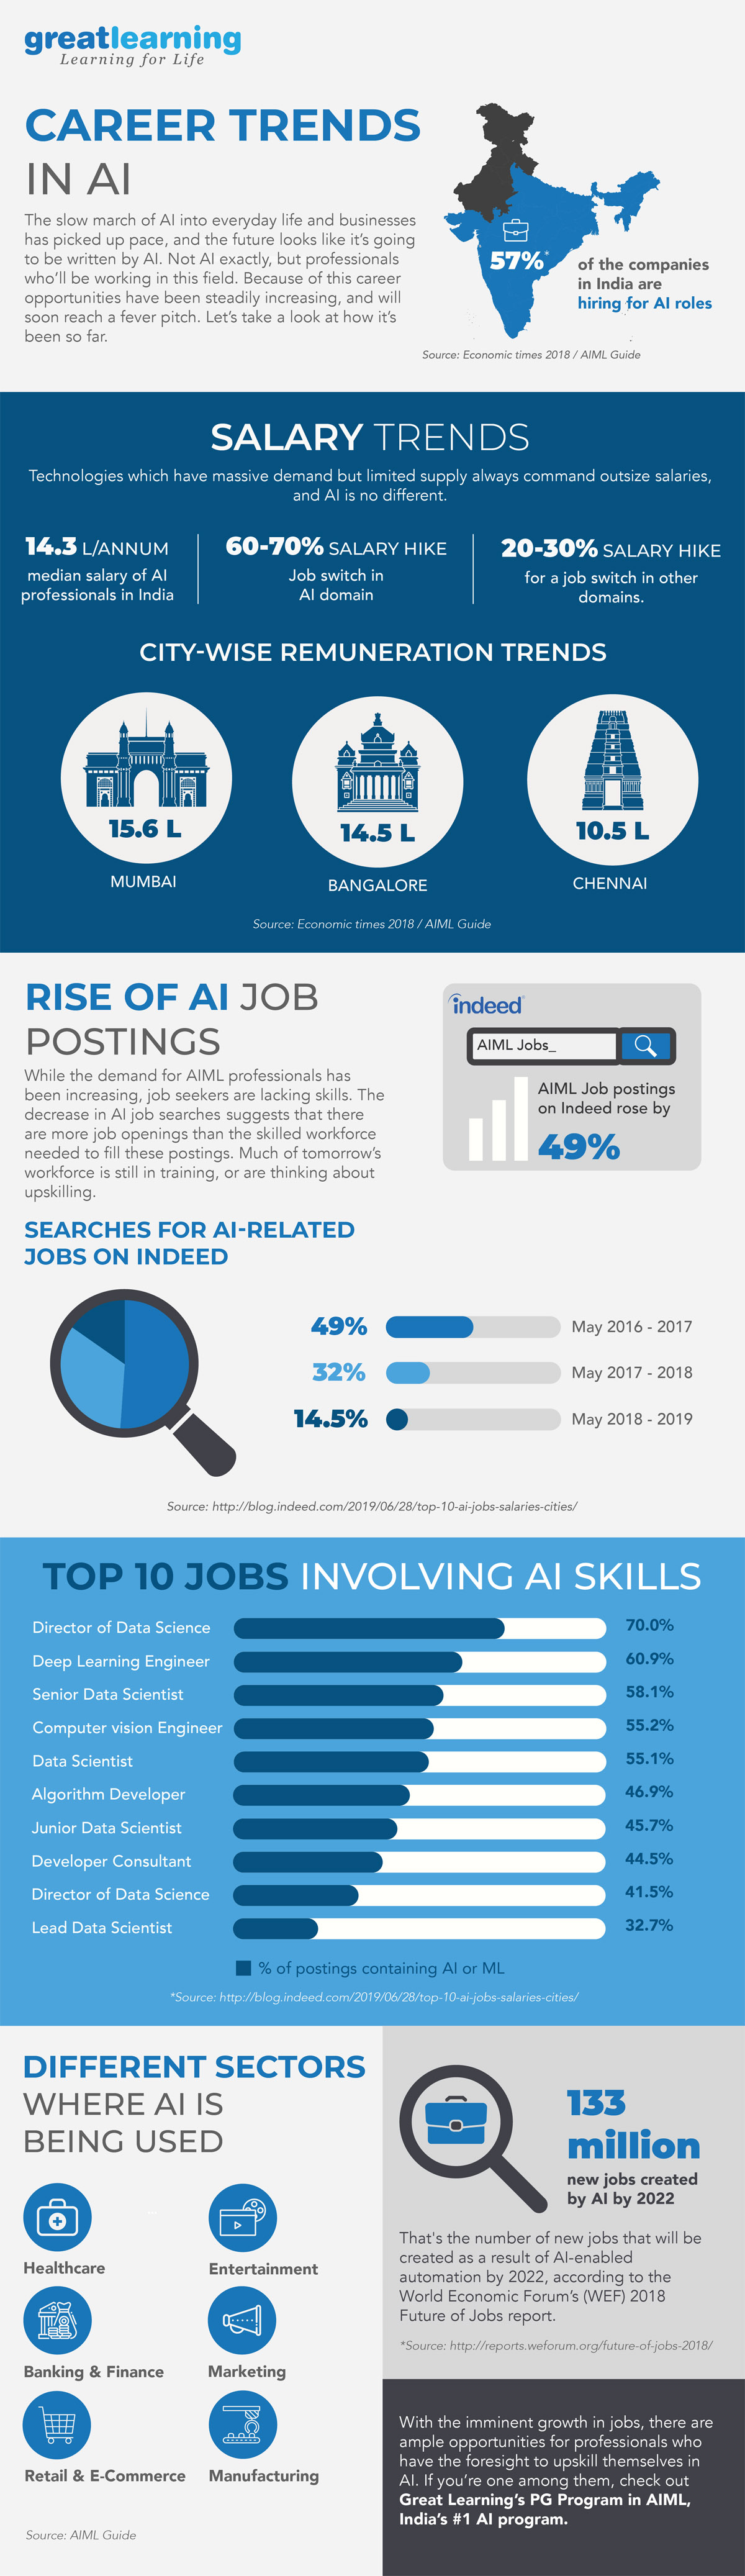 Career Trends in Artificial Intelligence